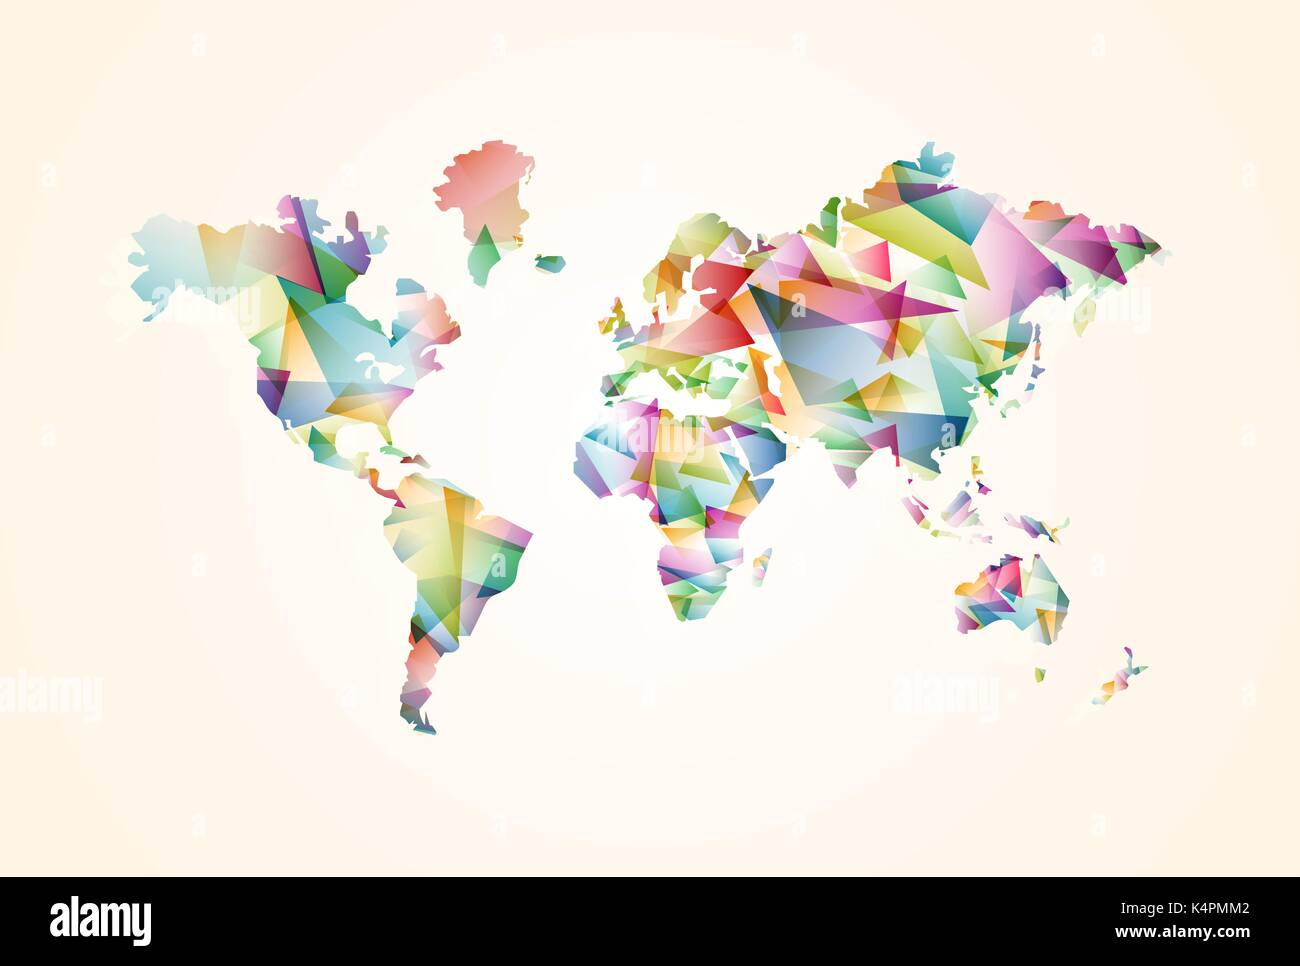 Abstract world map illustration template made of colorful abstract world map illustration template made of colorful transparent triangle shapes modern geometric planet silhouette eps10 vector gumiabroncs Gallery